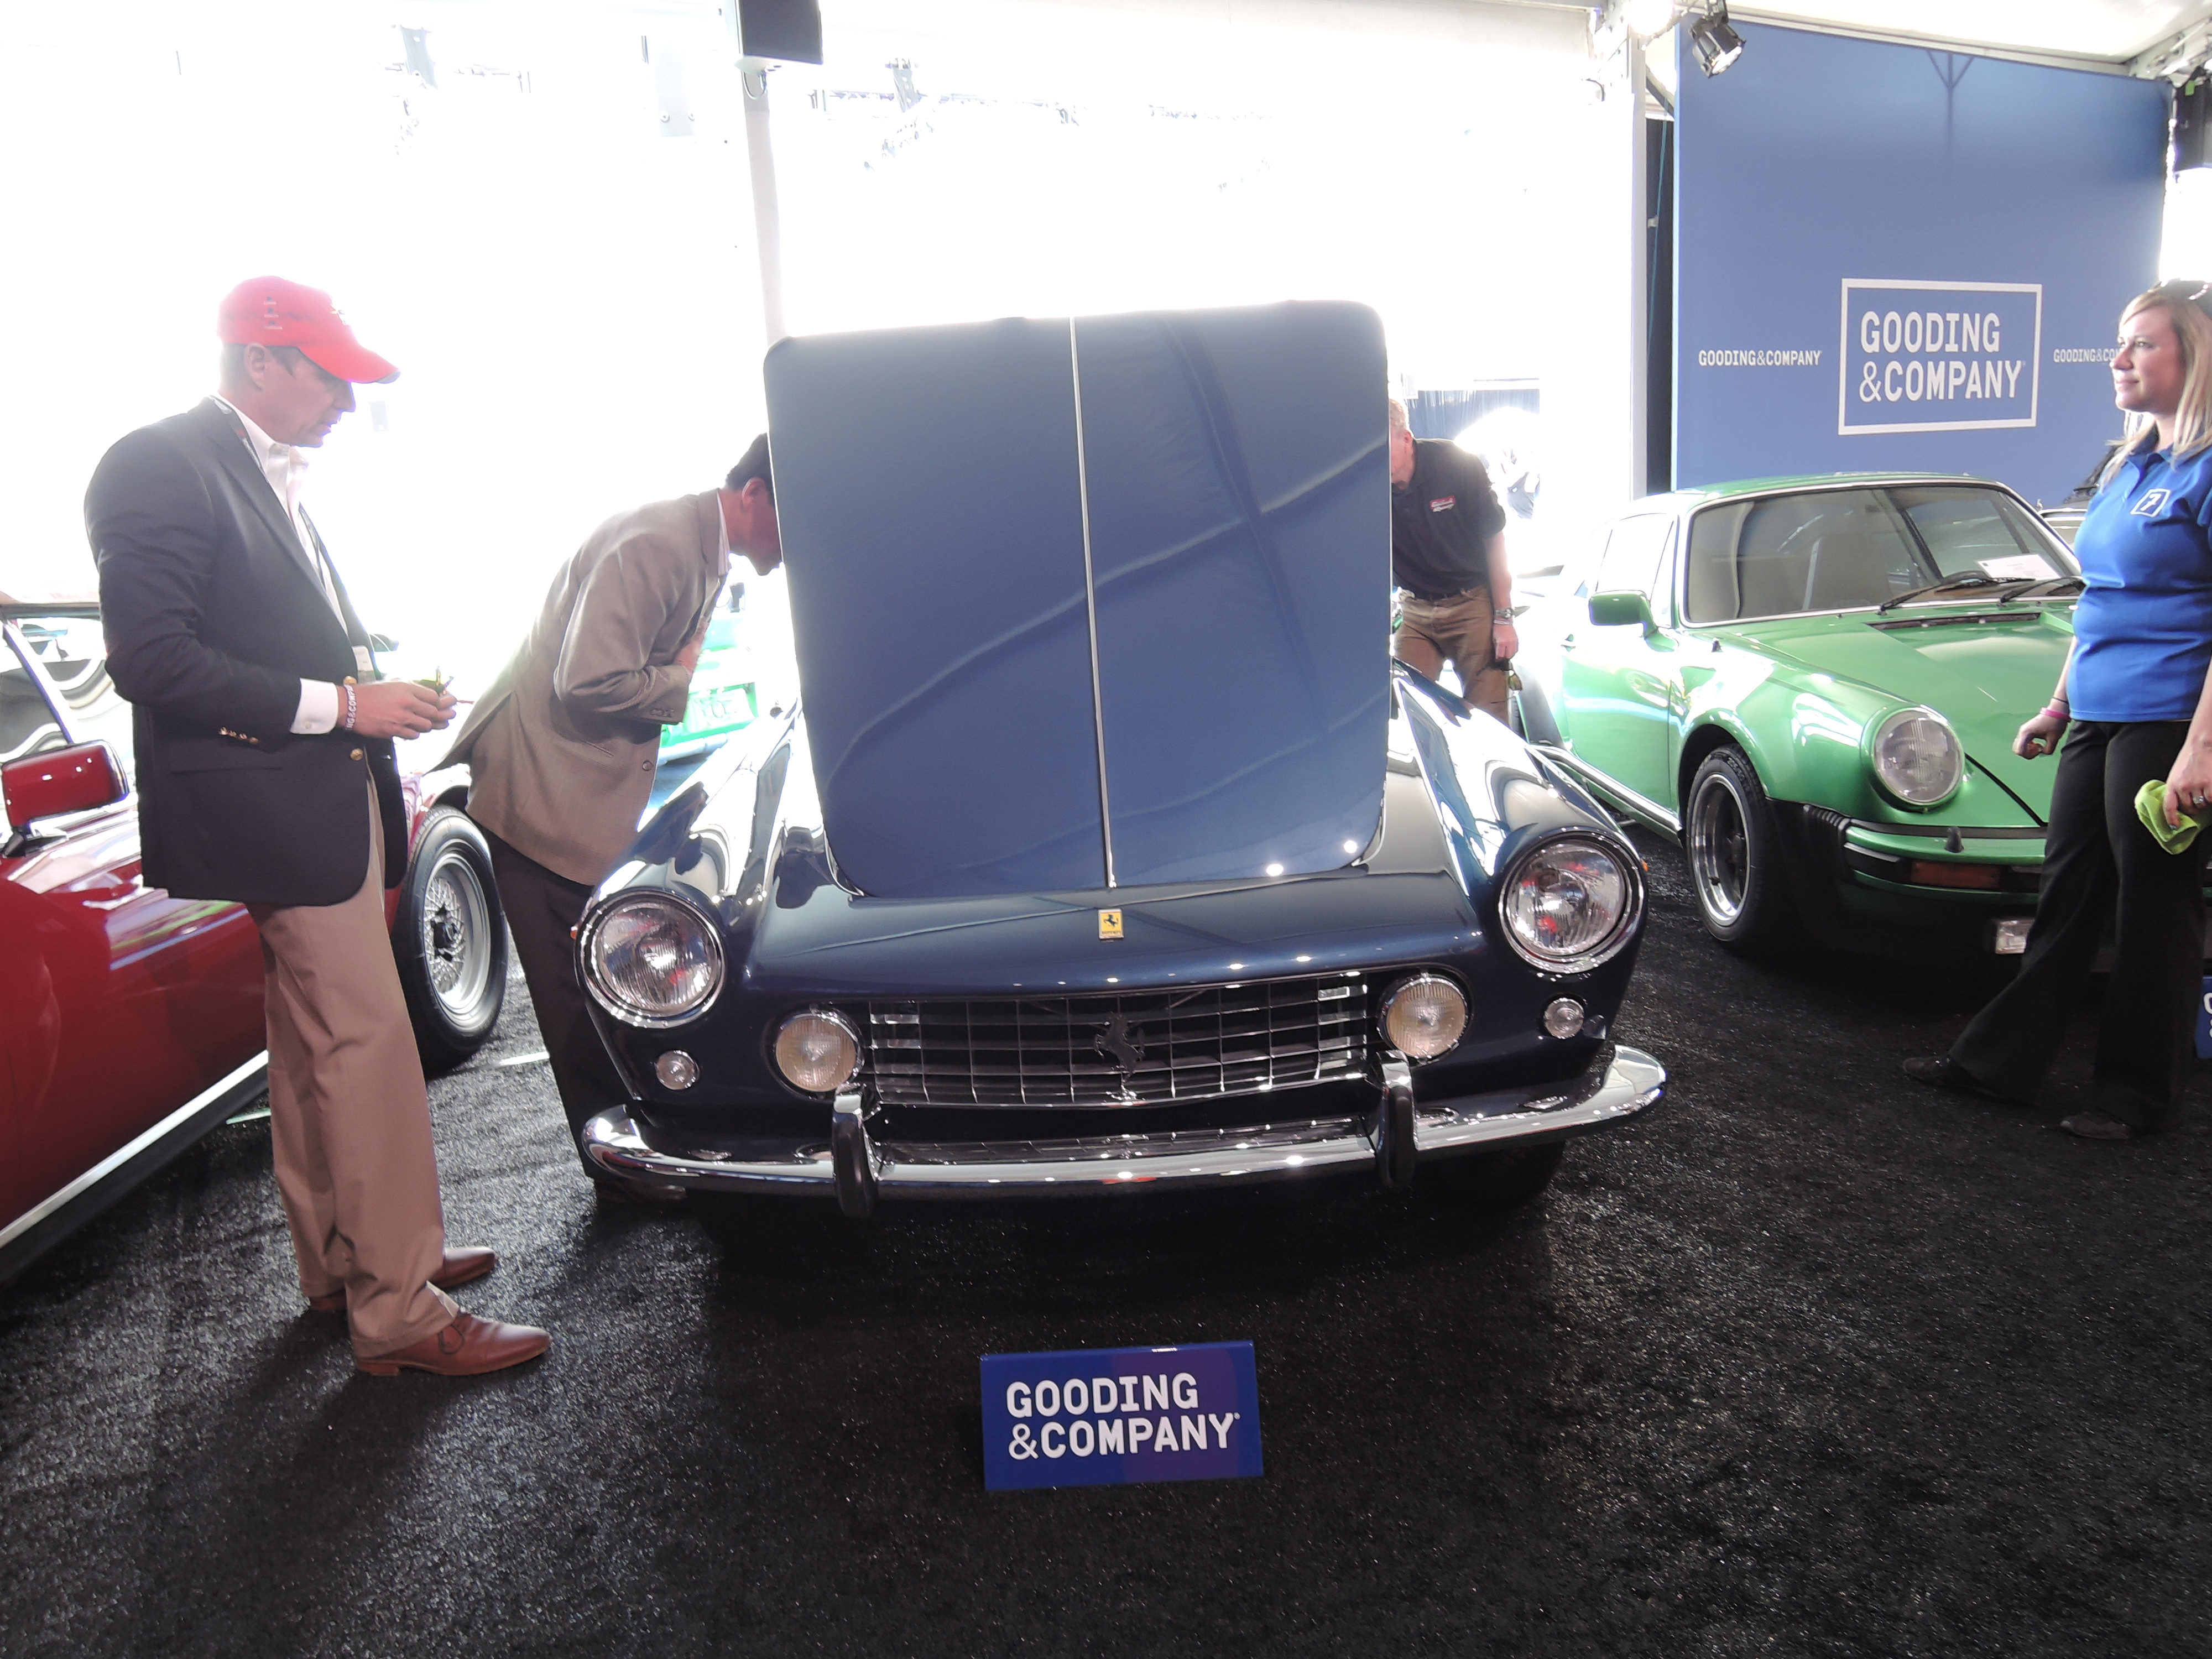 blue 1961 Ferrari 250 GT/E at Gooding & Company - classic car auctions